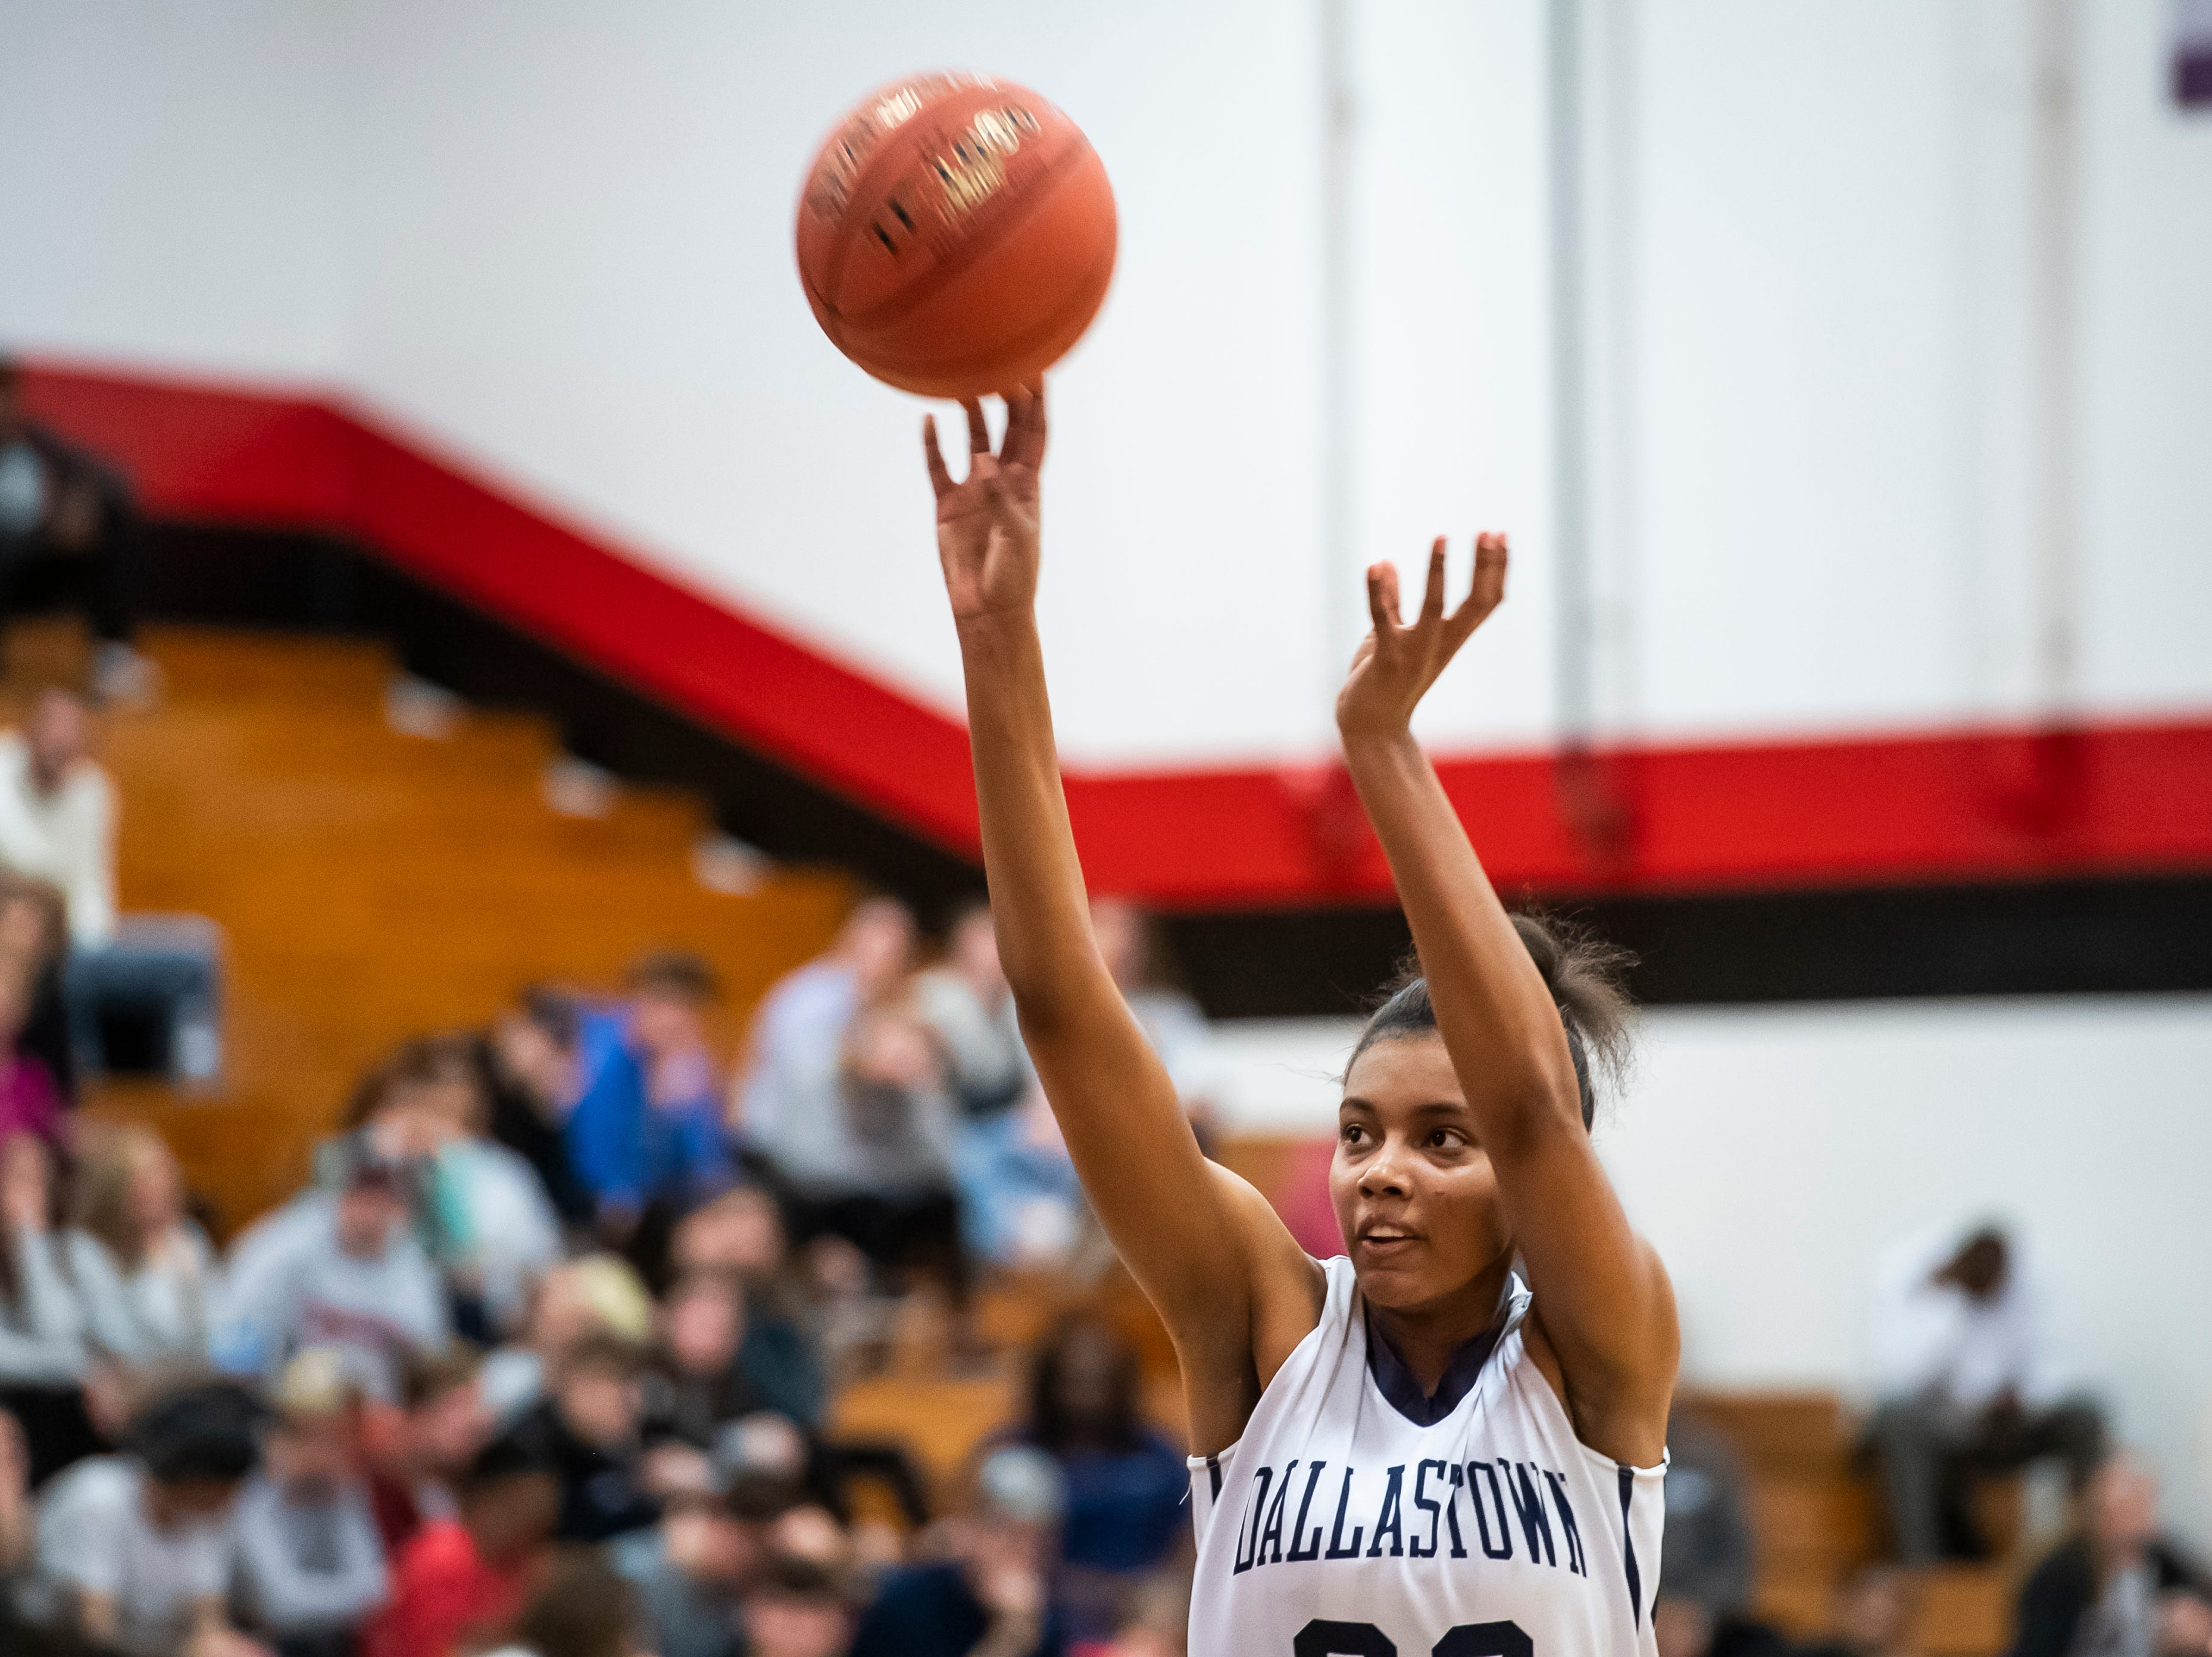 Dallastown's Aniya Matthews shoots a free throw during play against Susquehannock in a YAIAA quarterfinal game at Dover High School Friday, February 8, 2019. The Wildcats won 42-29.